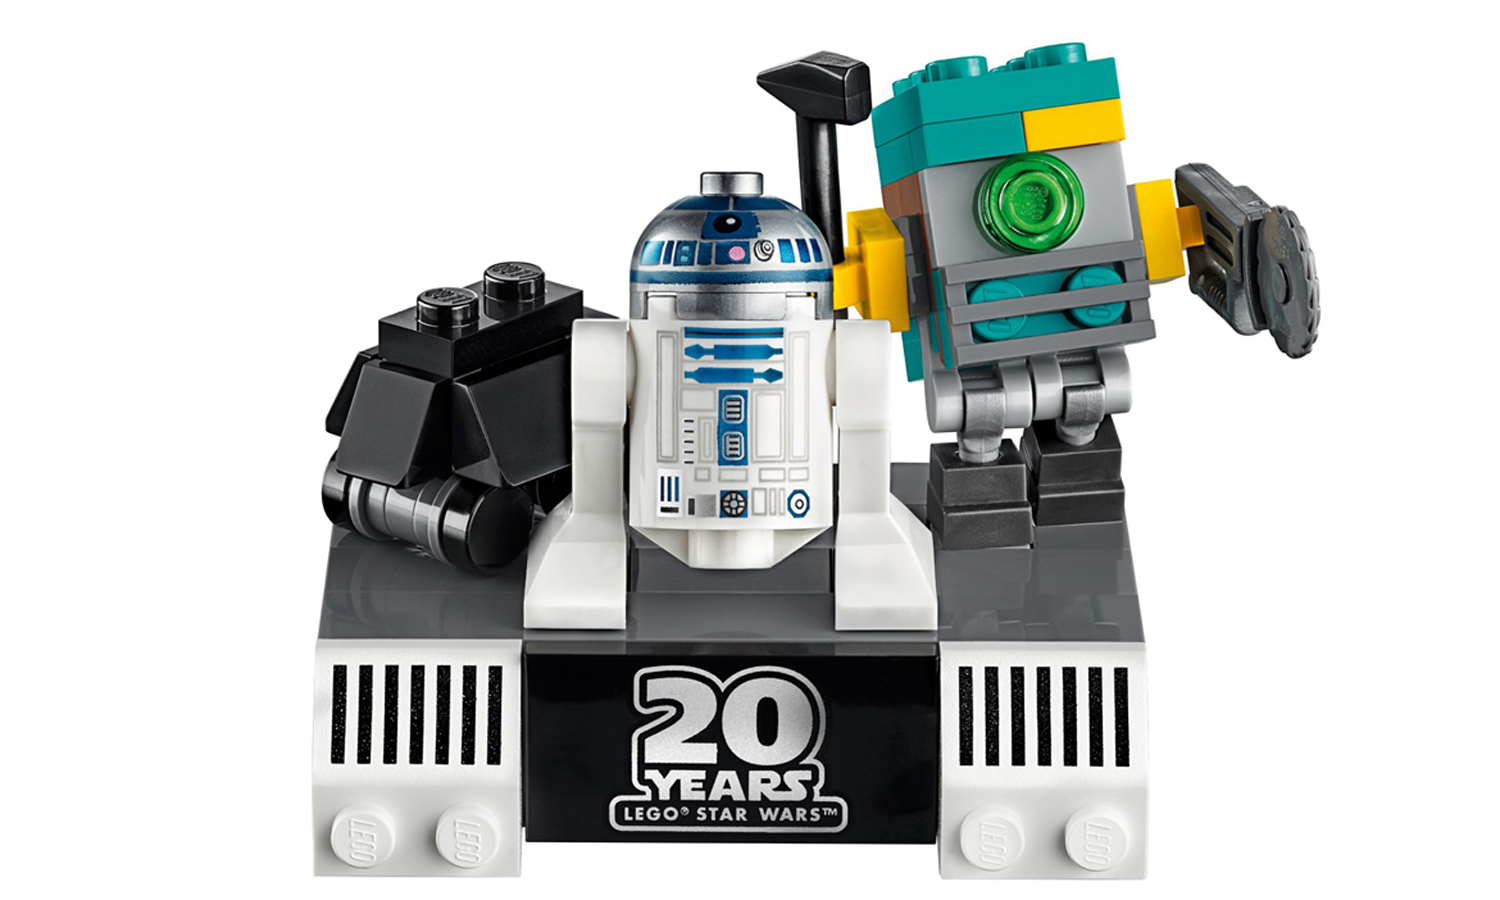 Lego Star Wars Mini Droid Commander 75522 Officially Announced